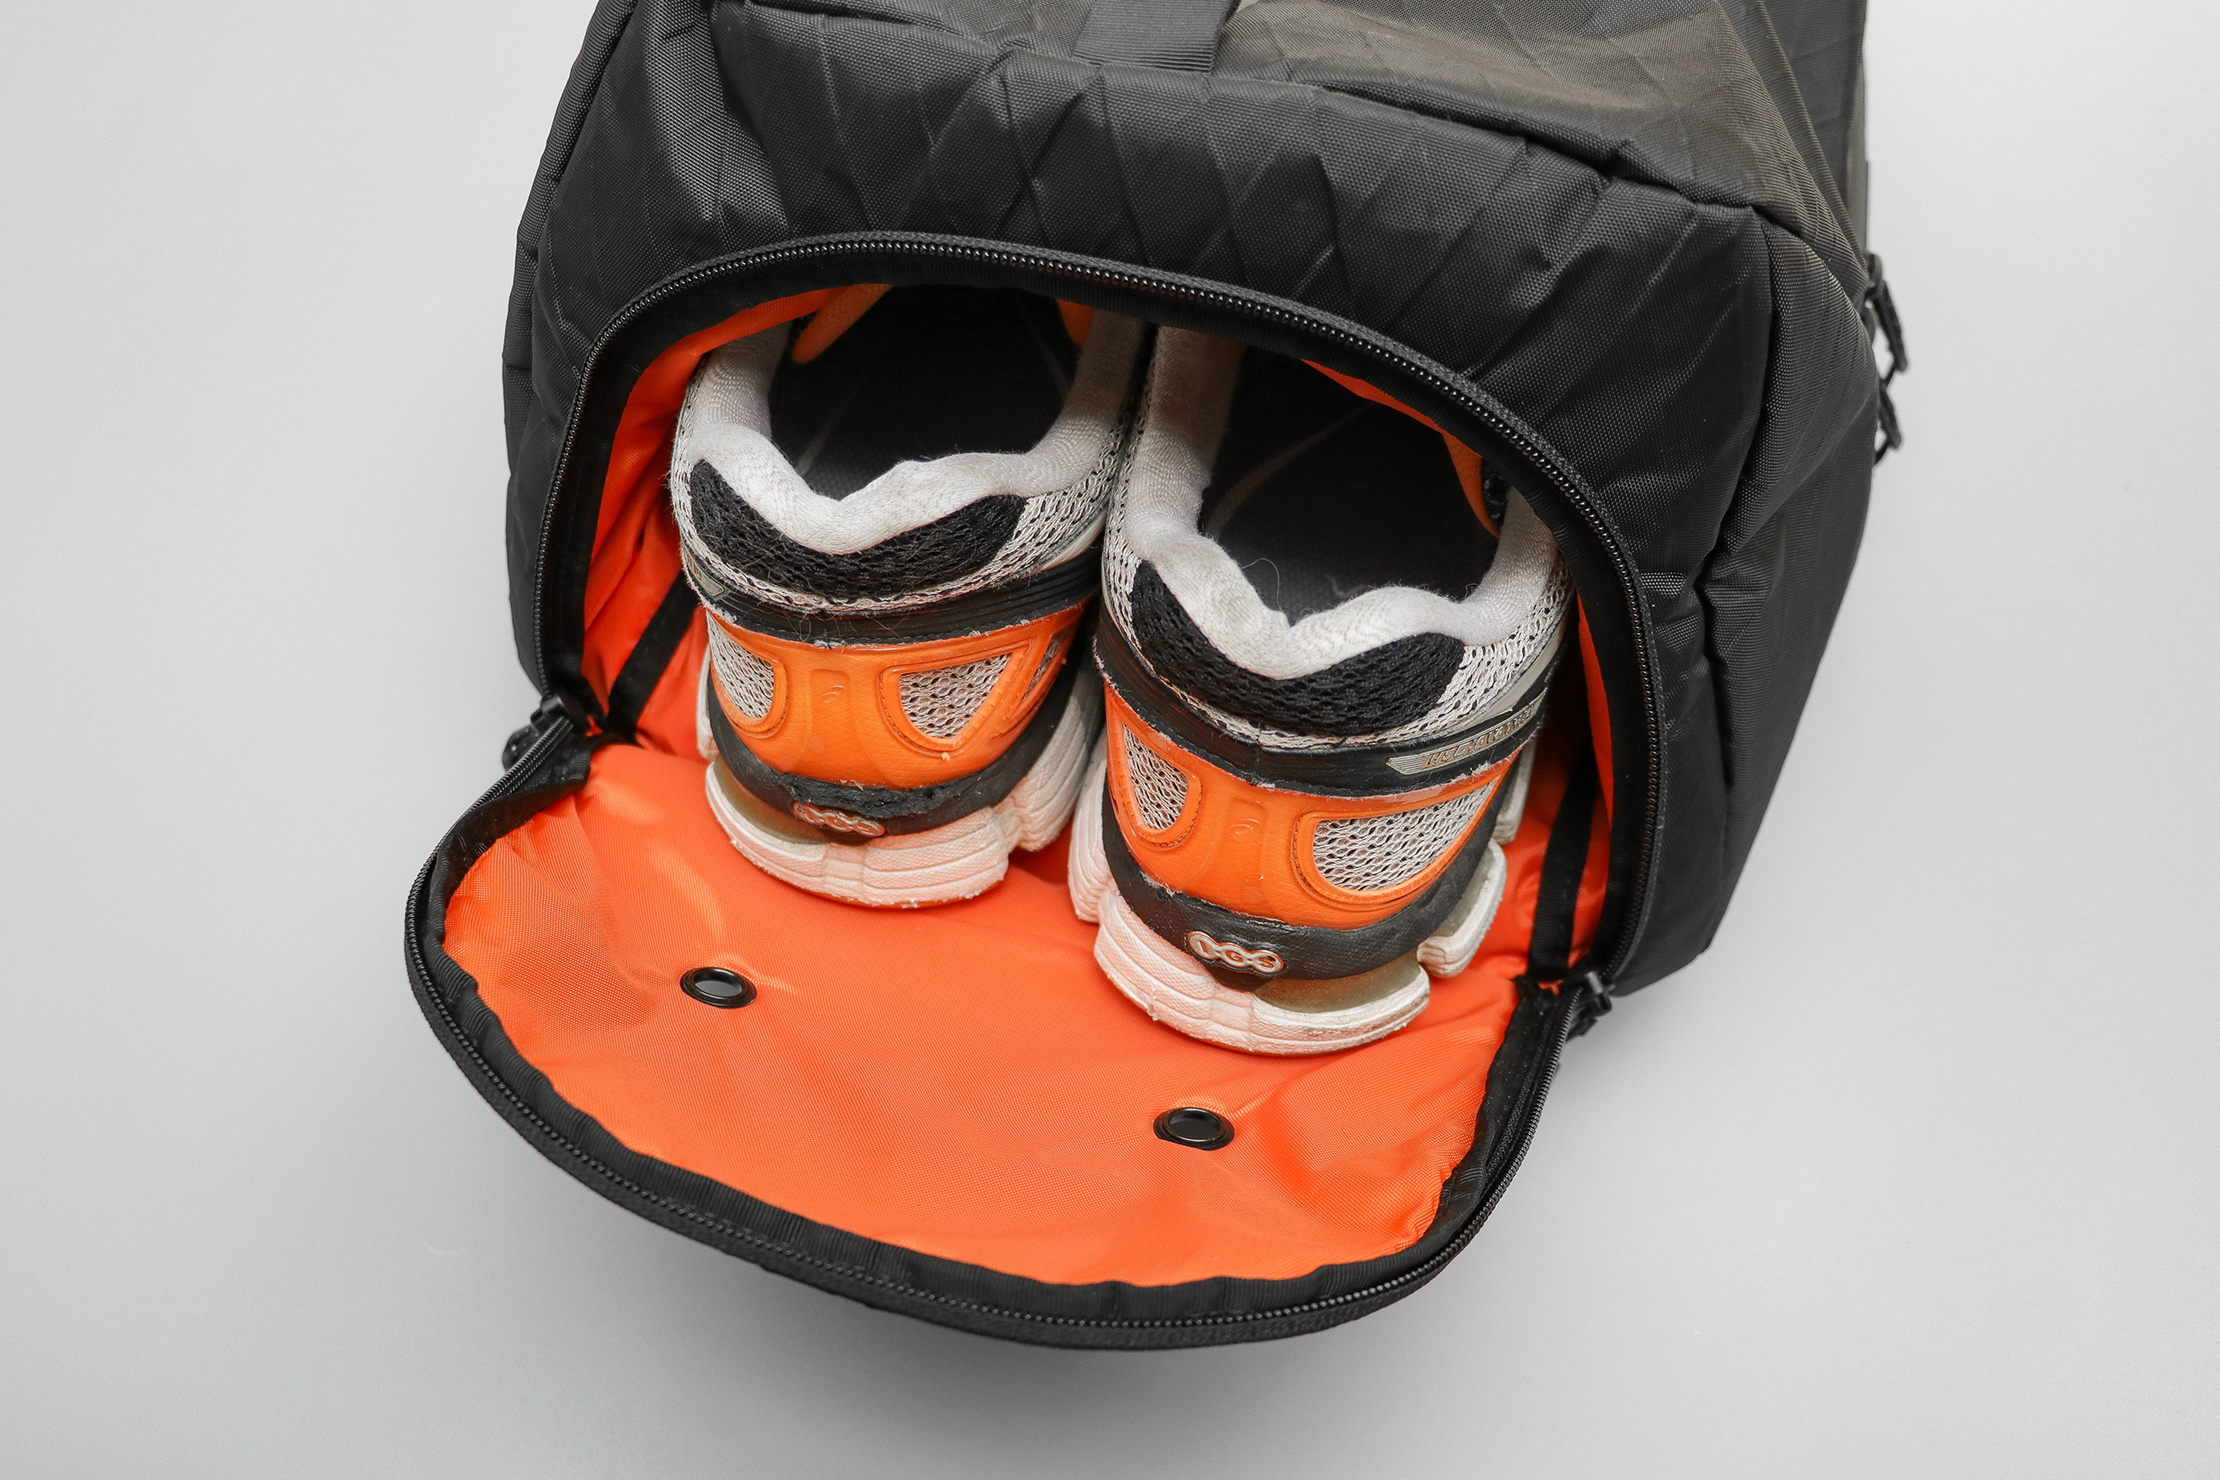 Aer Fit Pack 2 Shoe Compartment